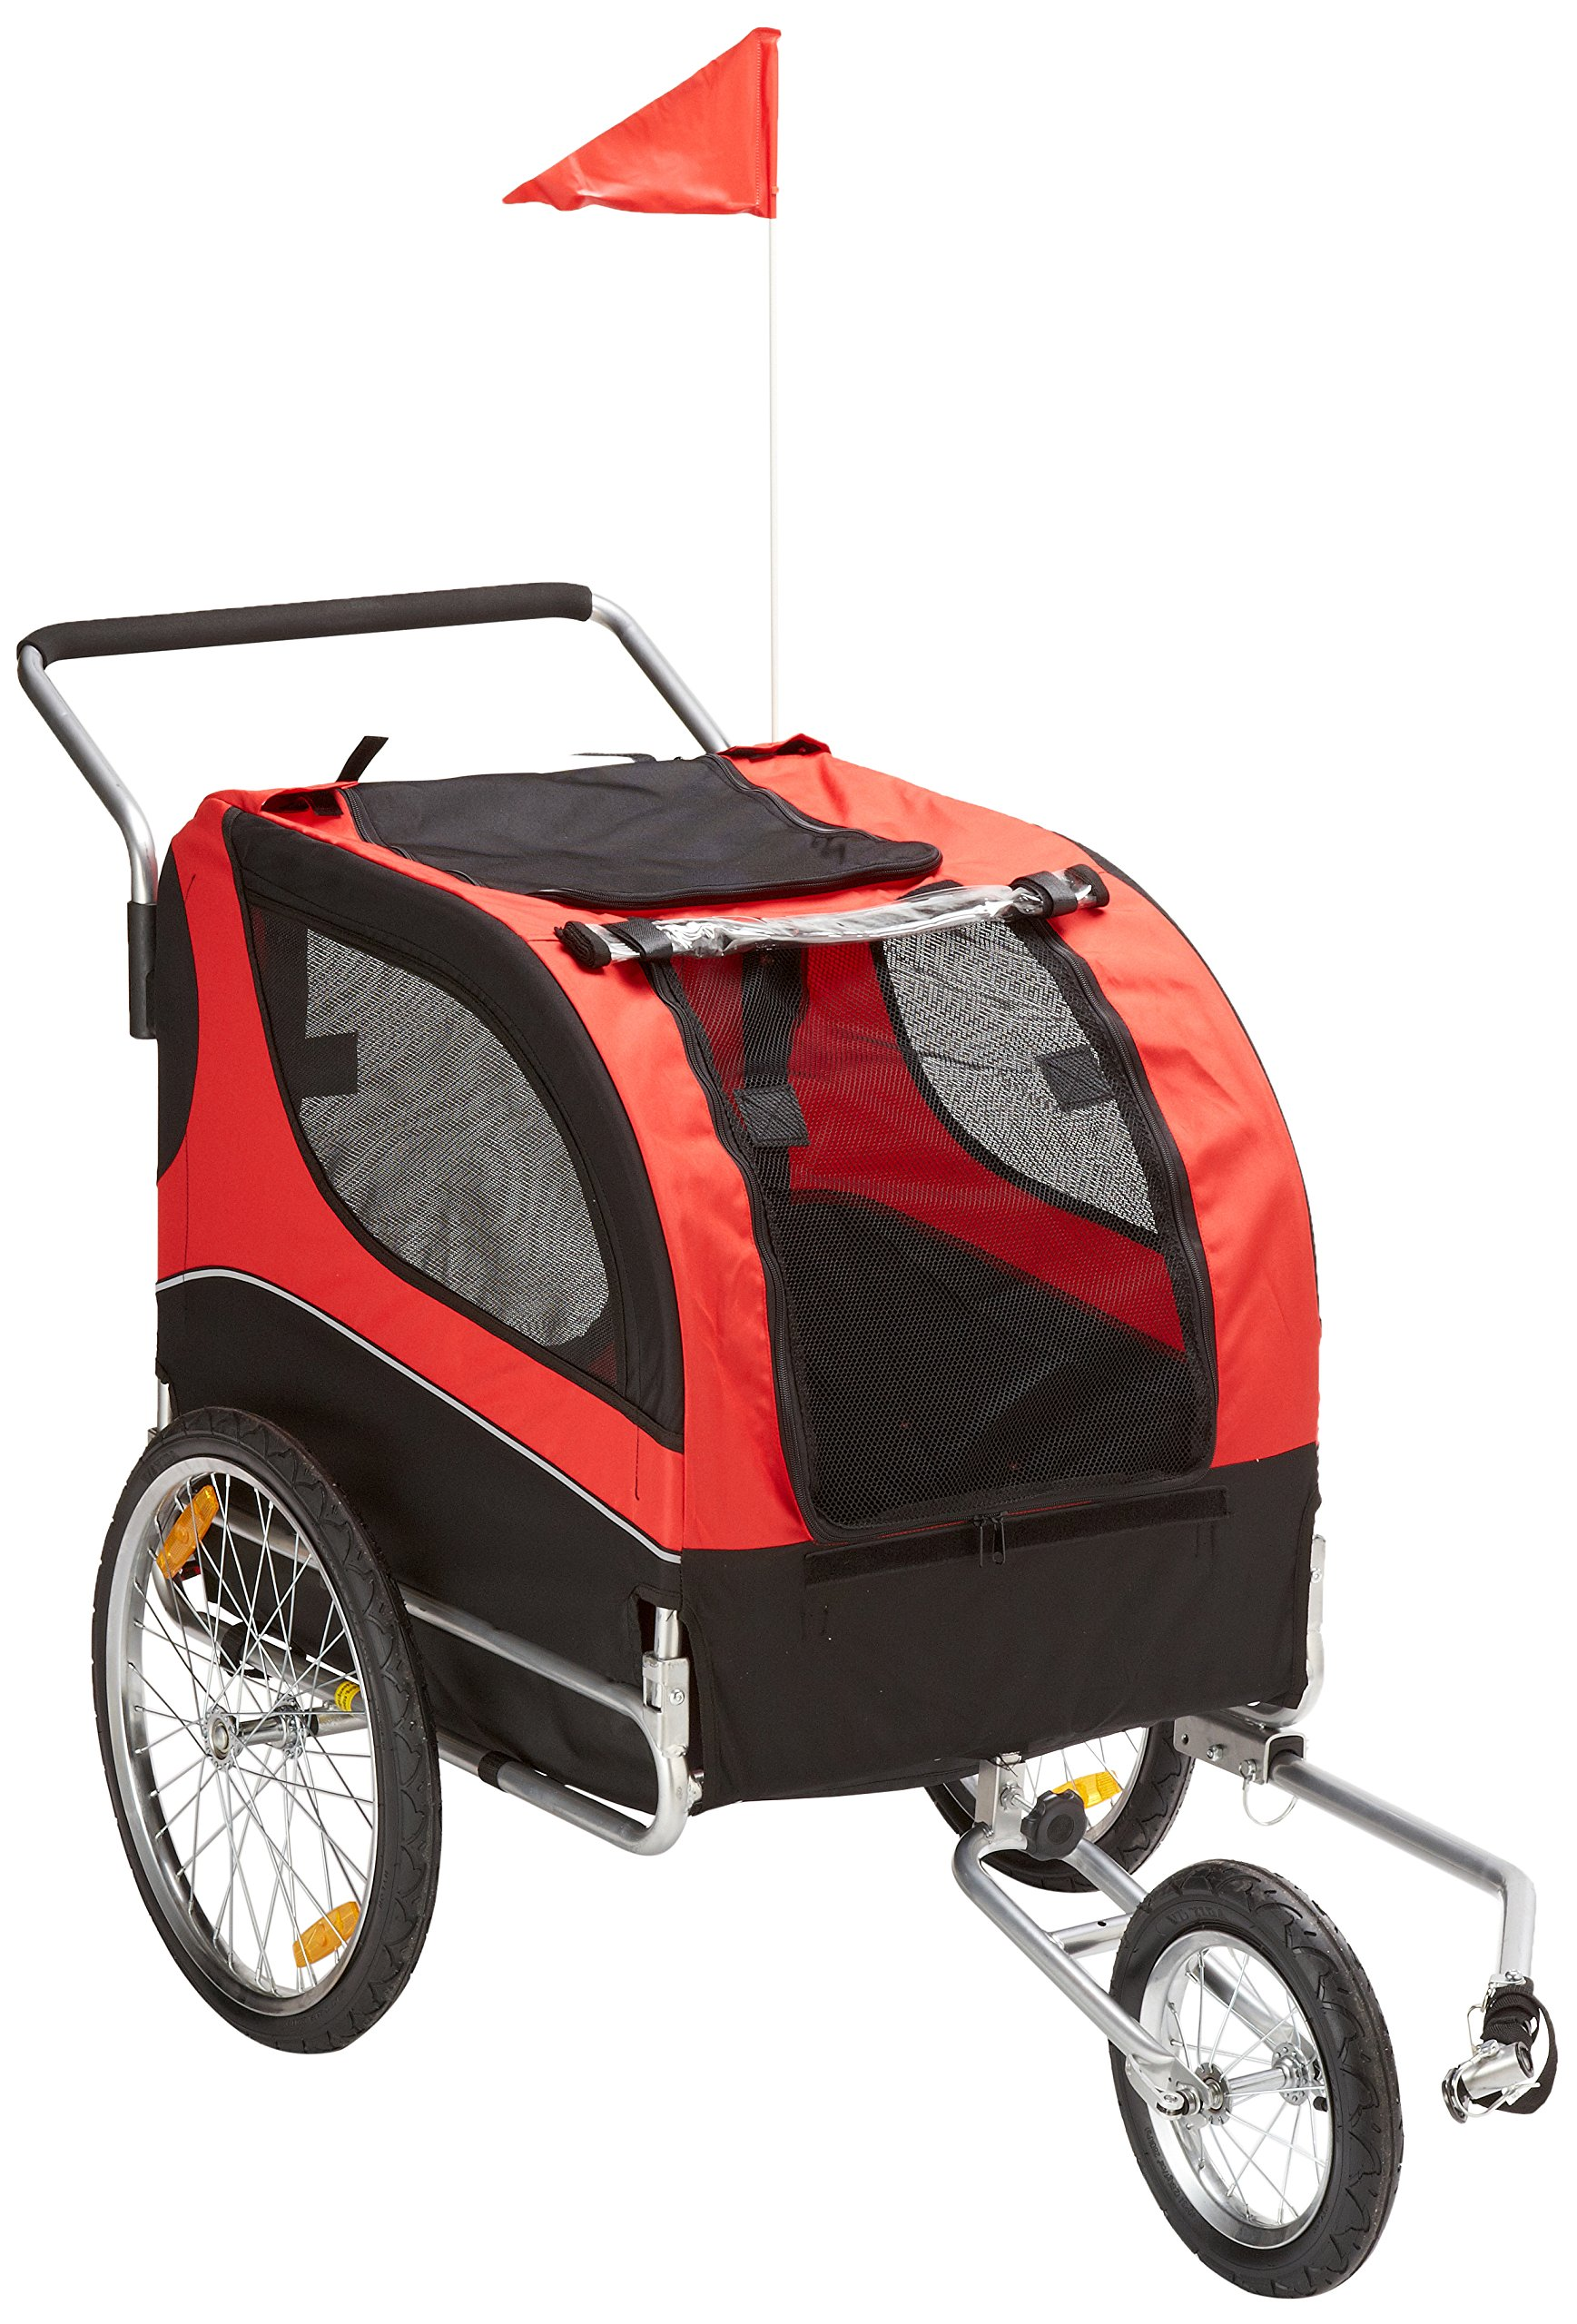 MDOG2 MK0291 Comfy Pet Bike Trailer/Jogging Stroller, Red/Black